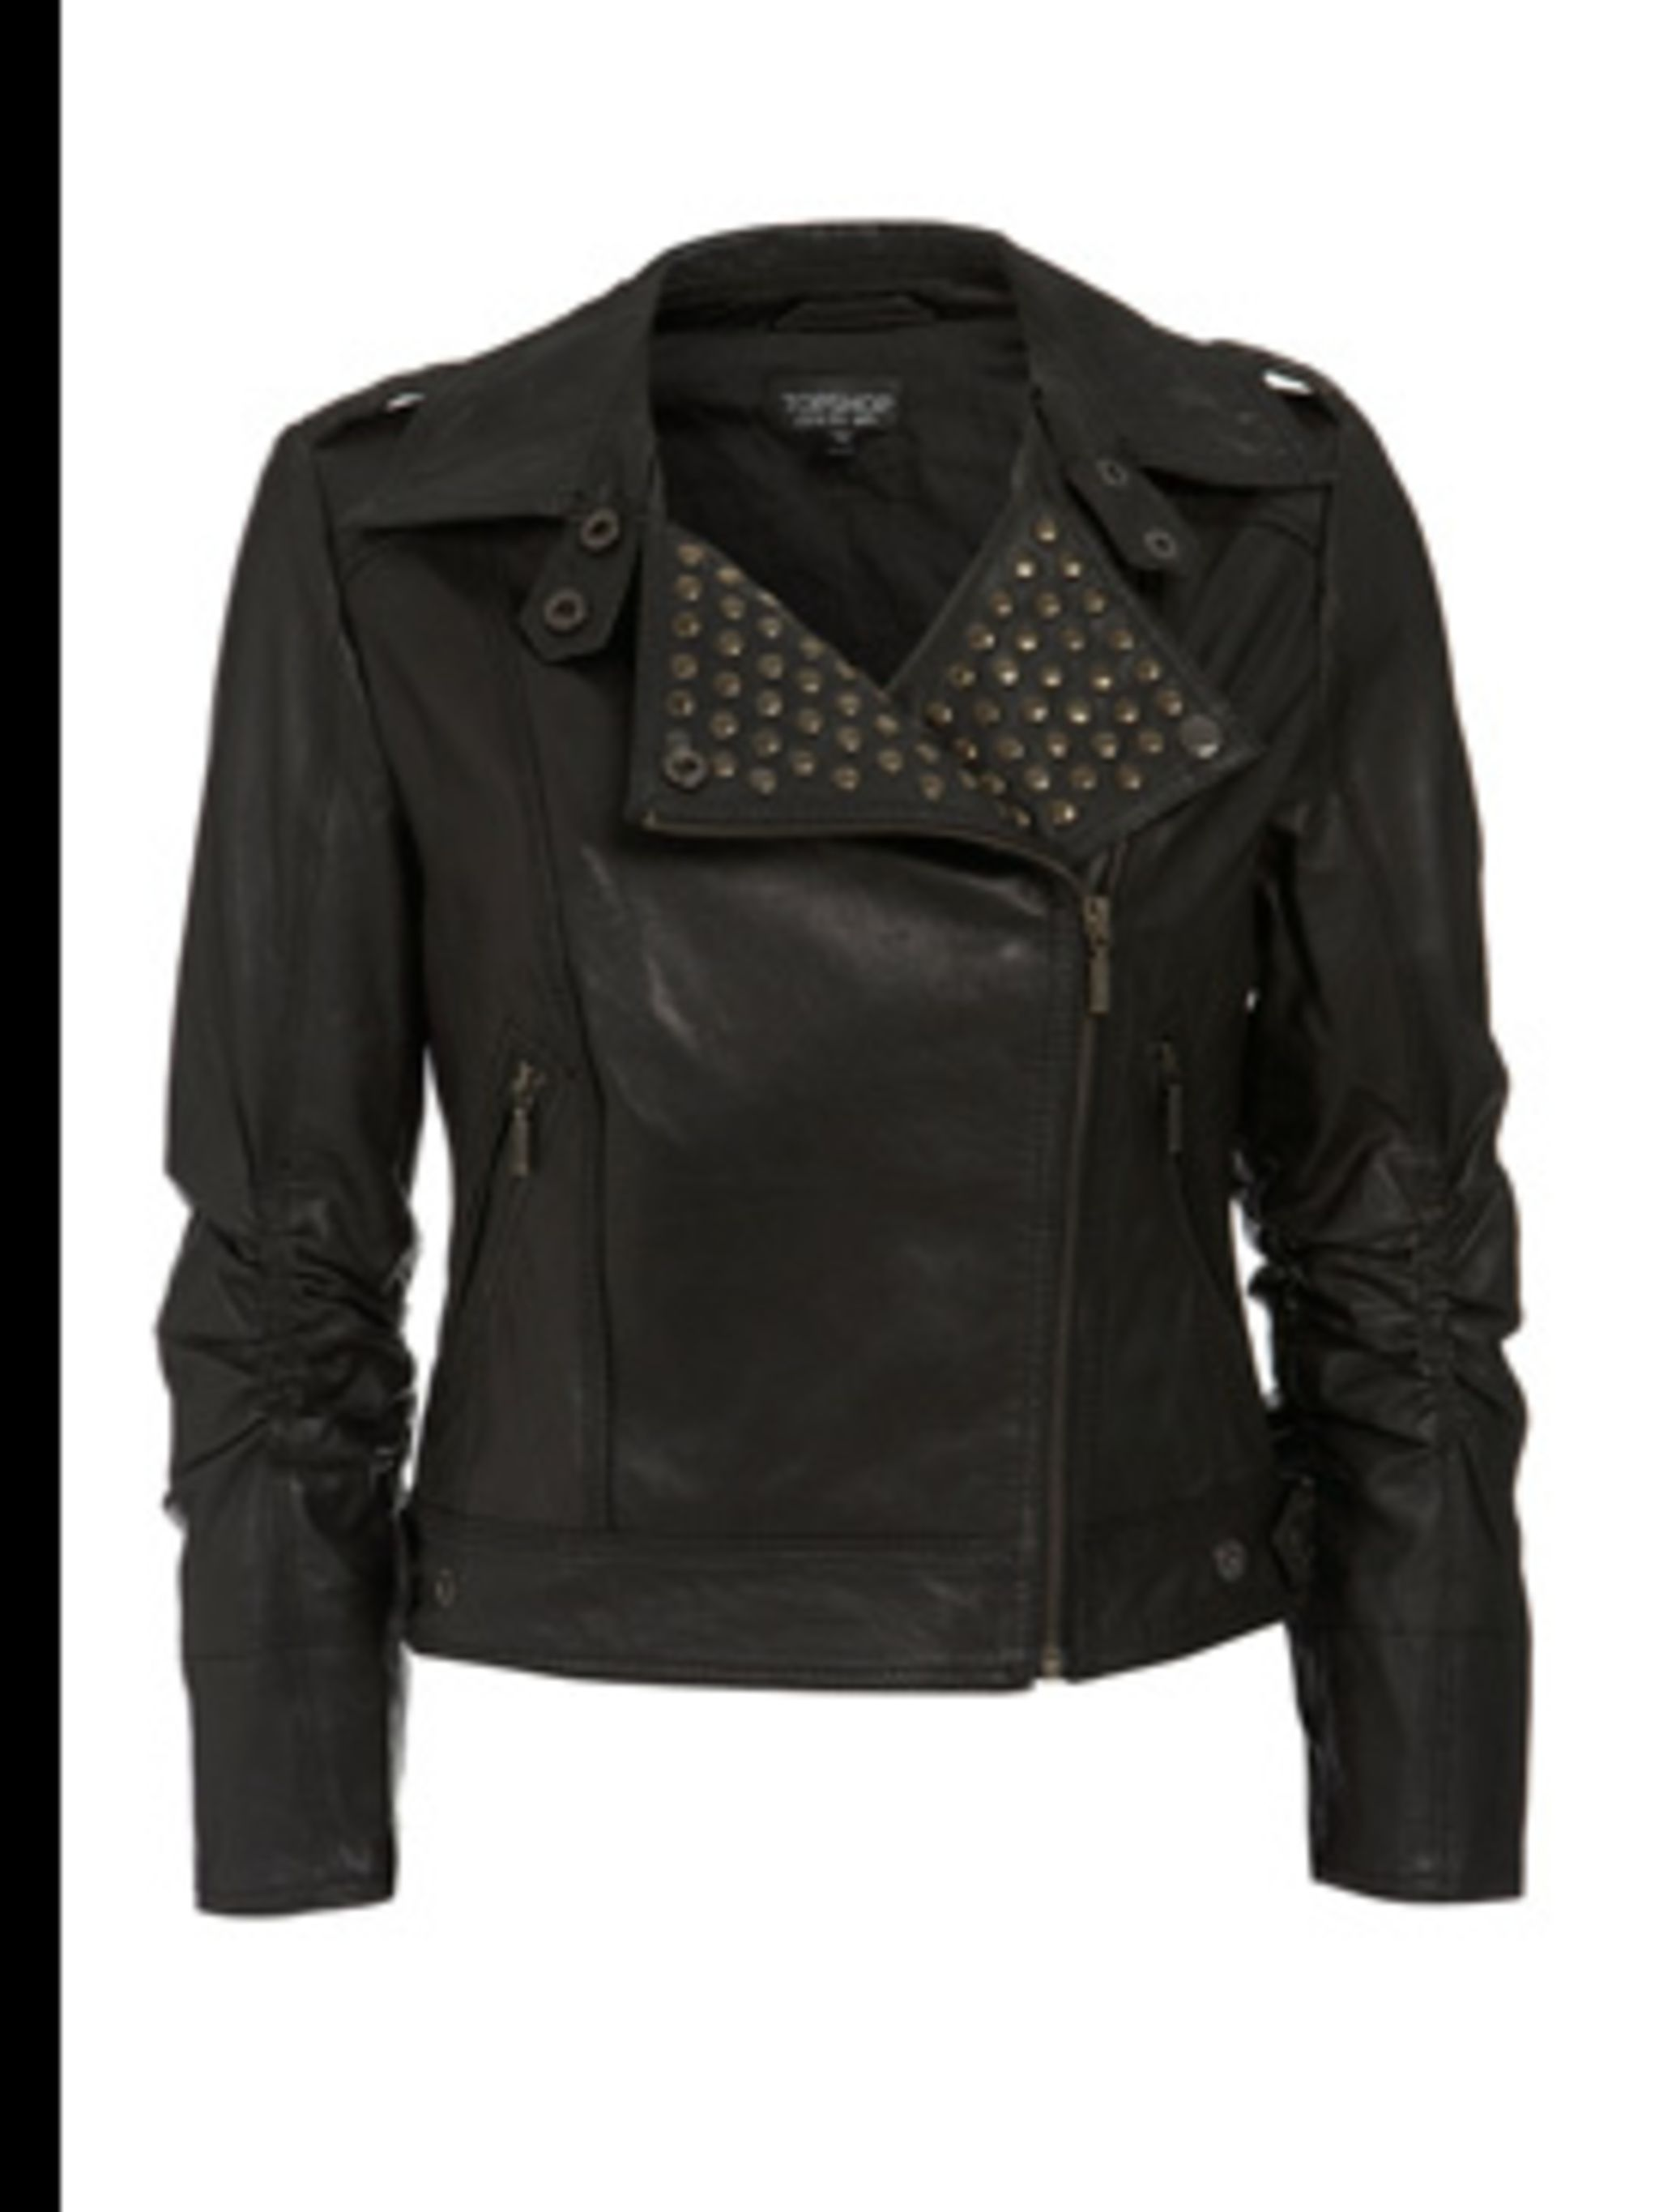 <p>Leather jacket with studs, £120, by Topshop (0845 121 4519)</p>